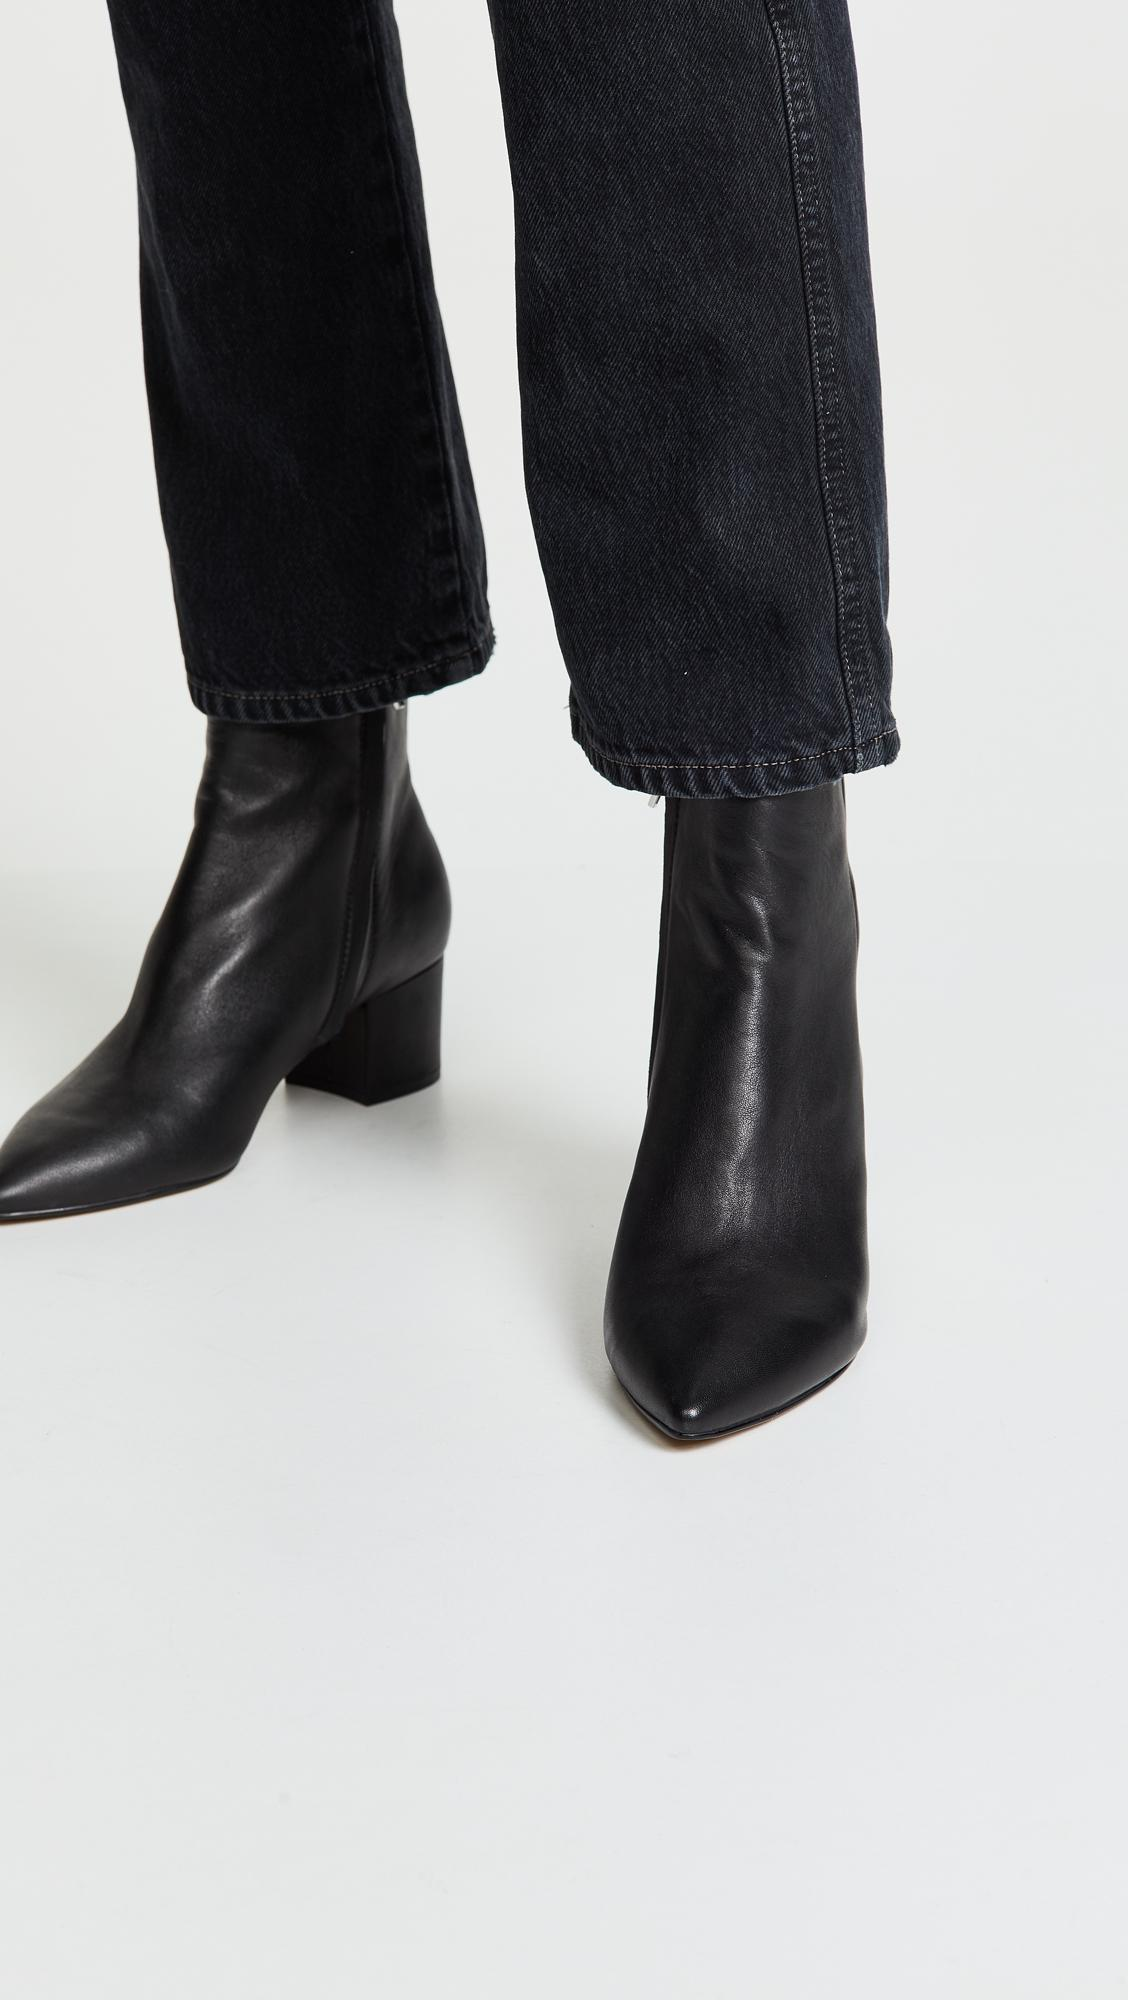 e98f1e5a019 Lyst - Dolce Vita Bel Point Toe Booties in Black